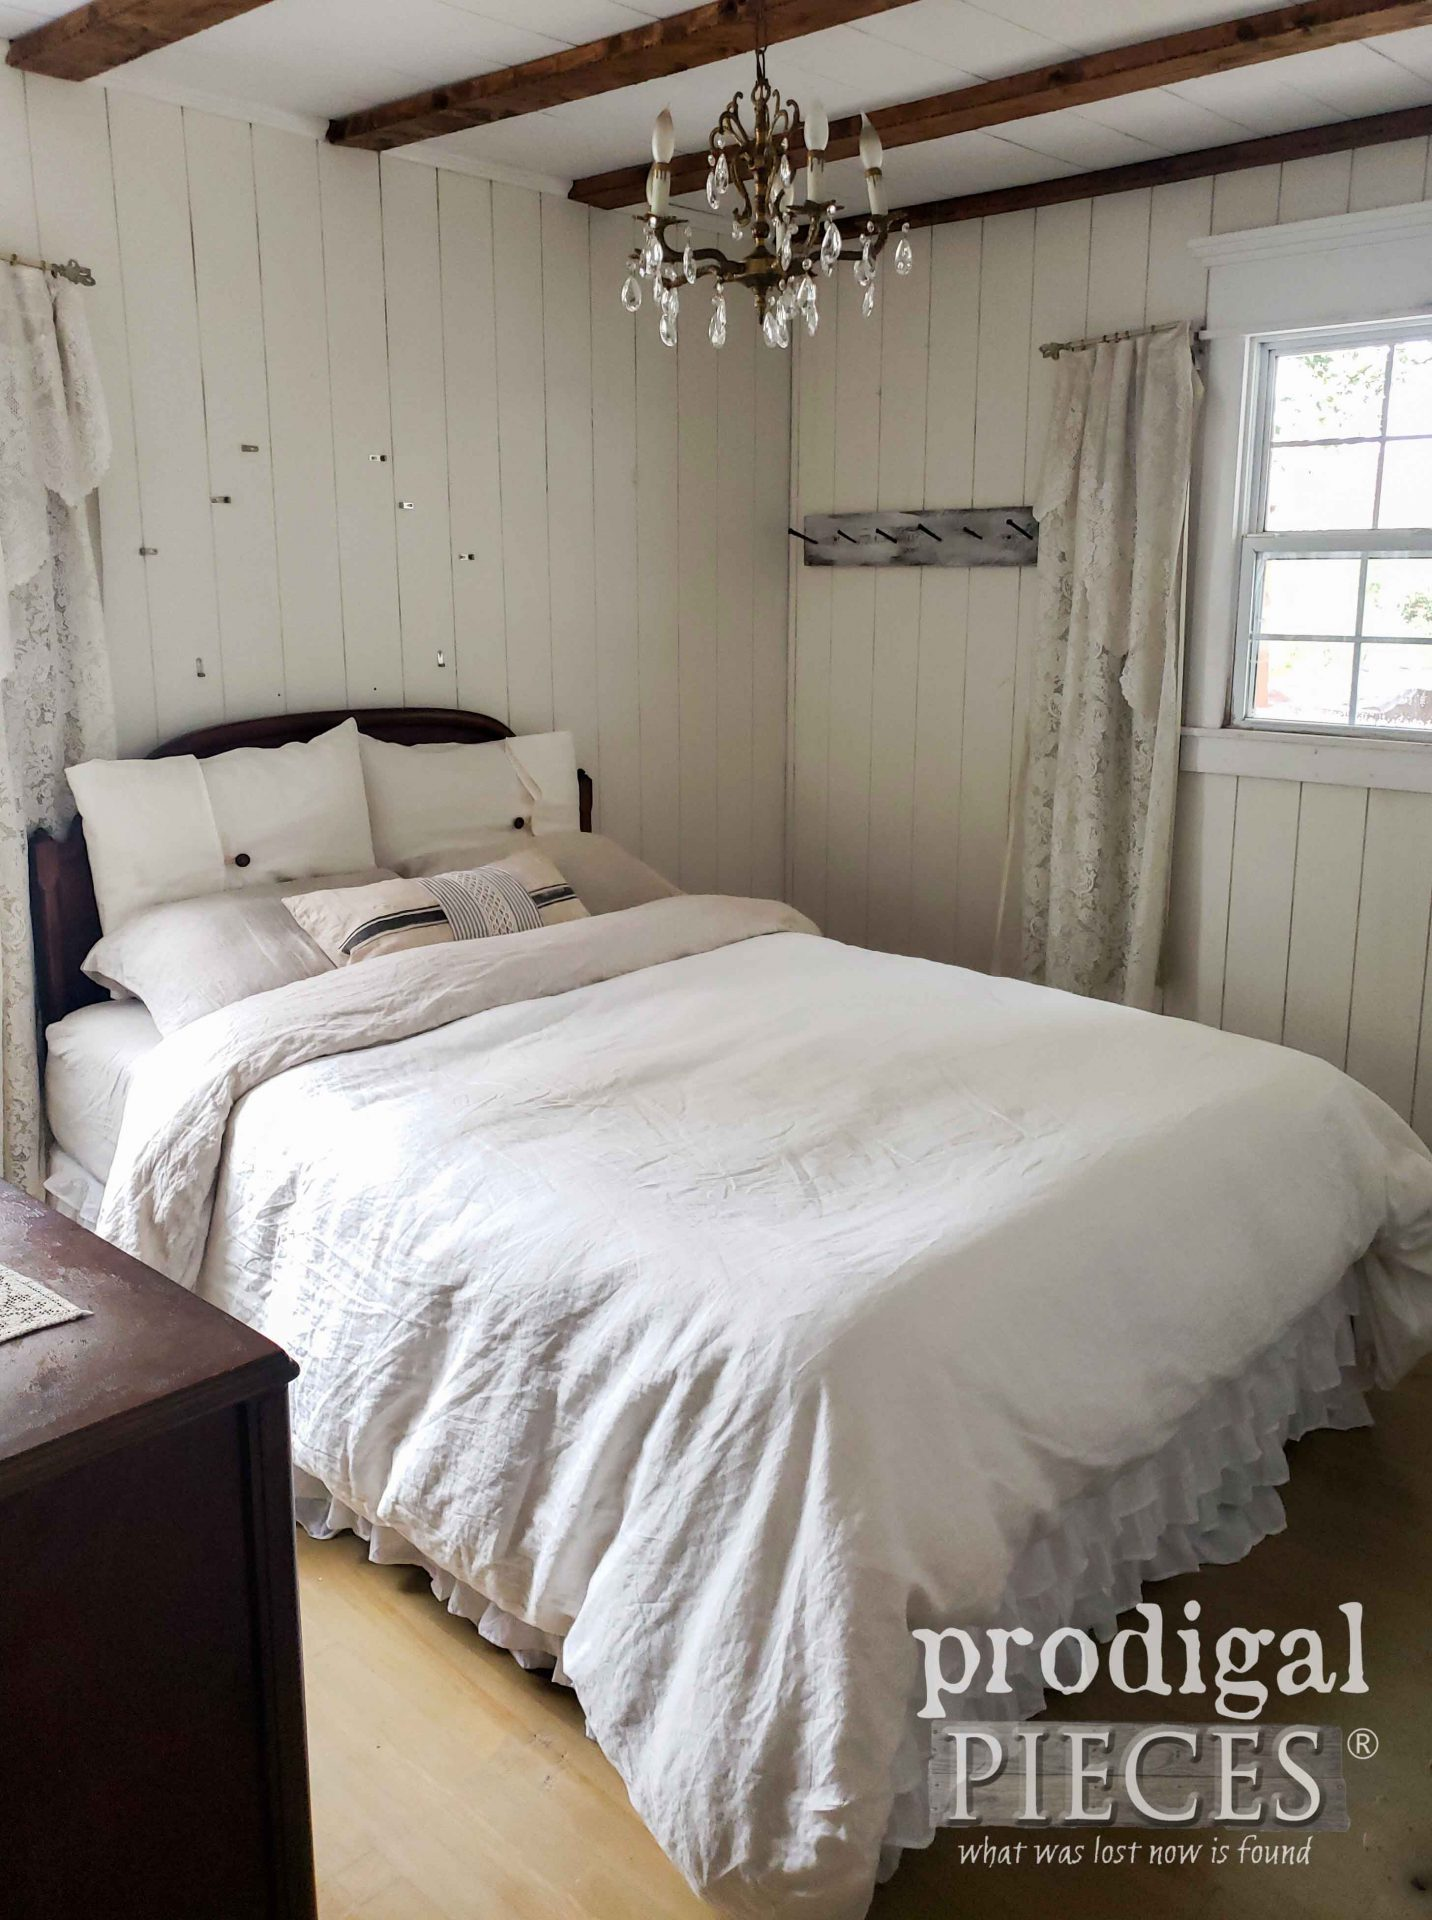 Farmhouse Bedroom Before Fall Decor | prodigalpieces.com #prodigalpieces